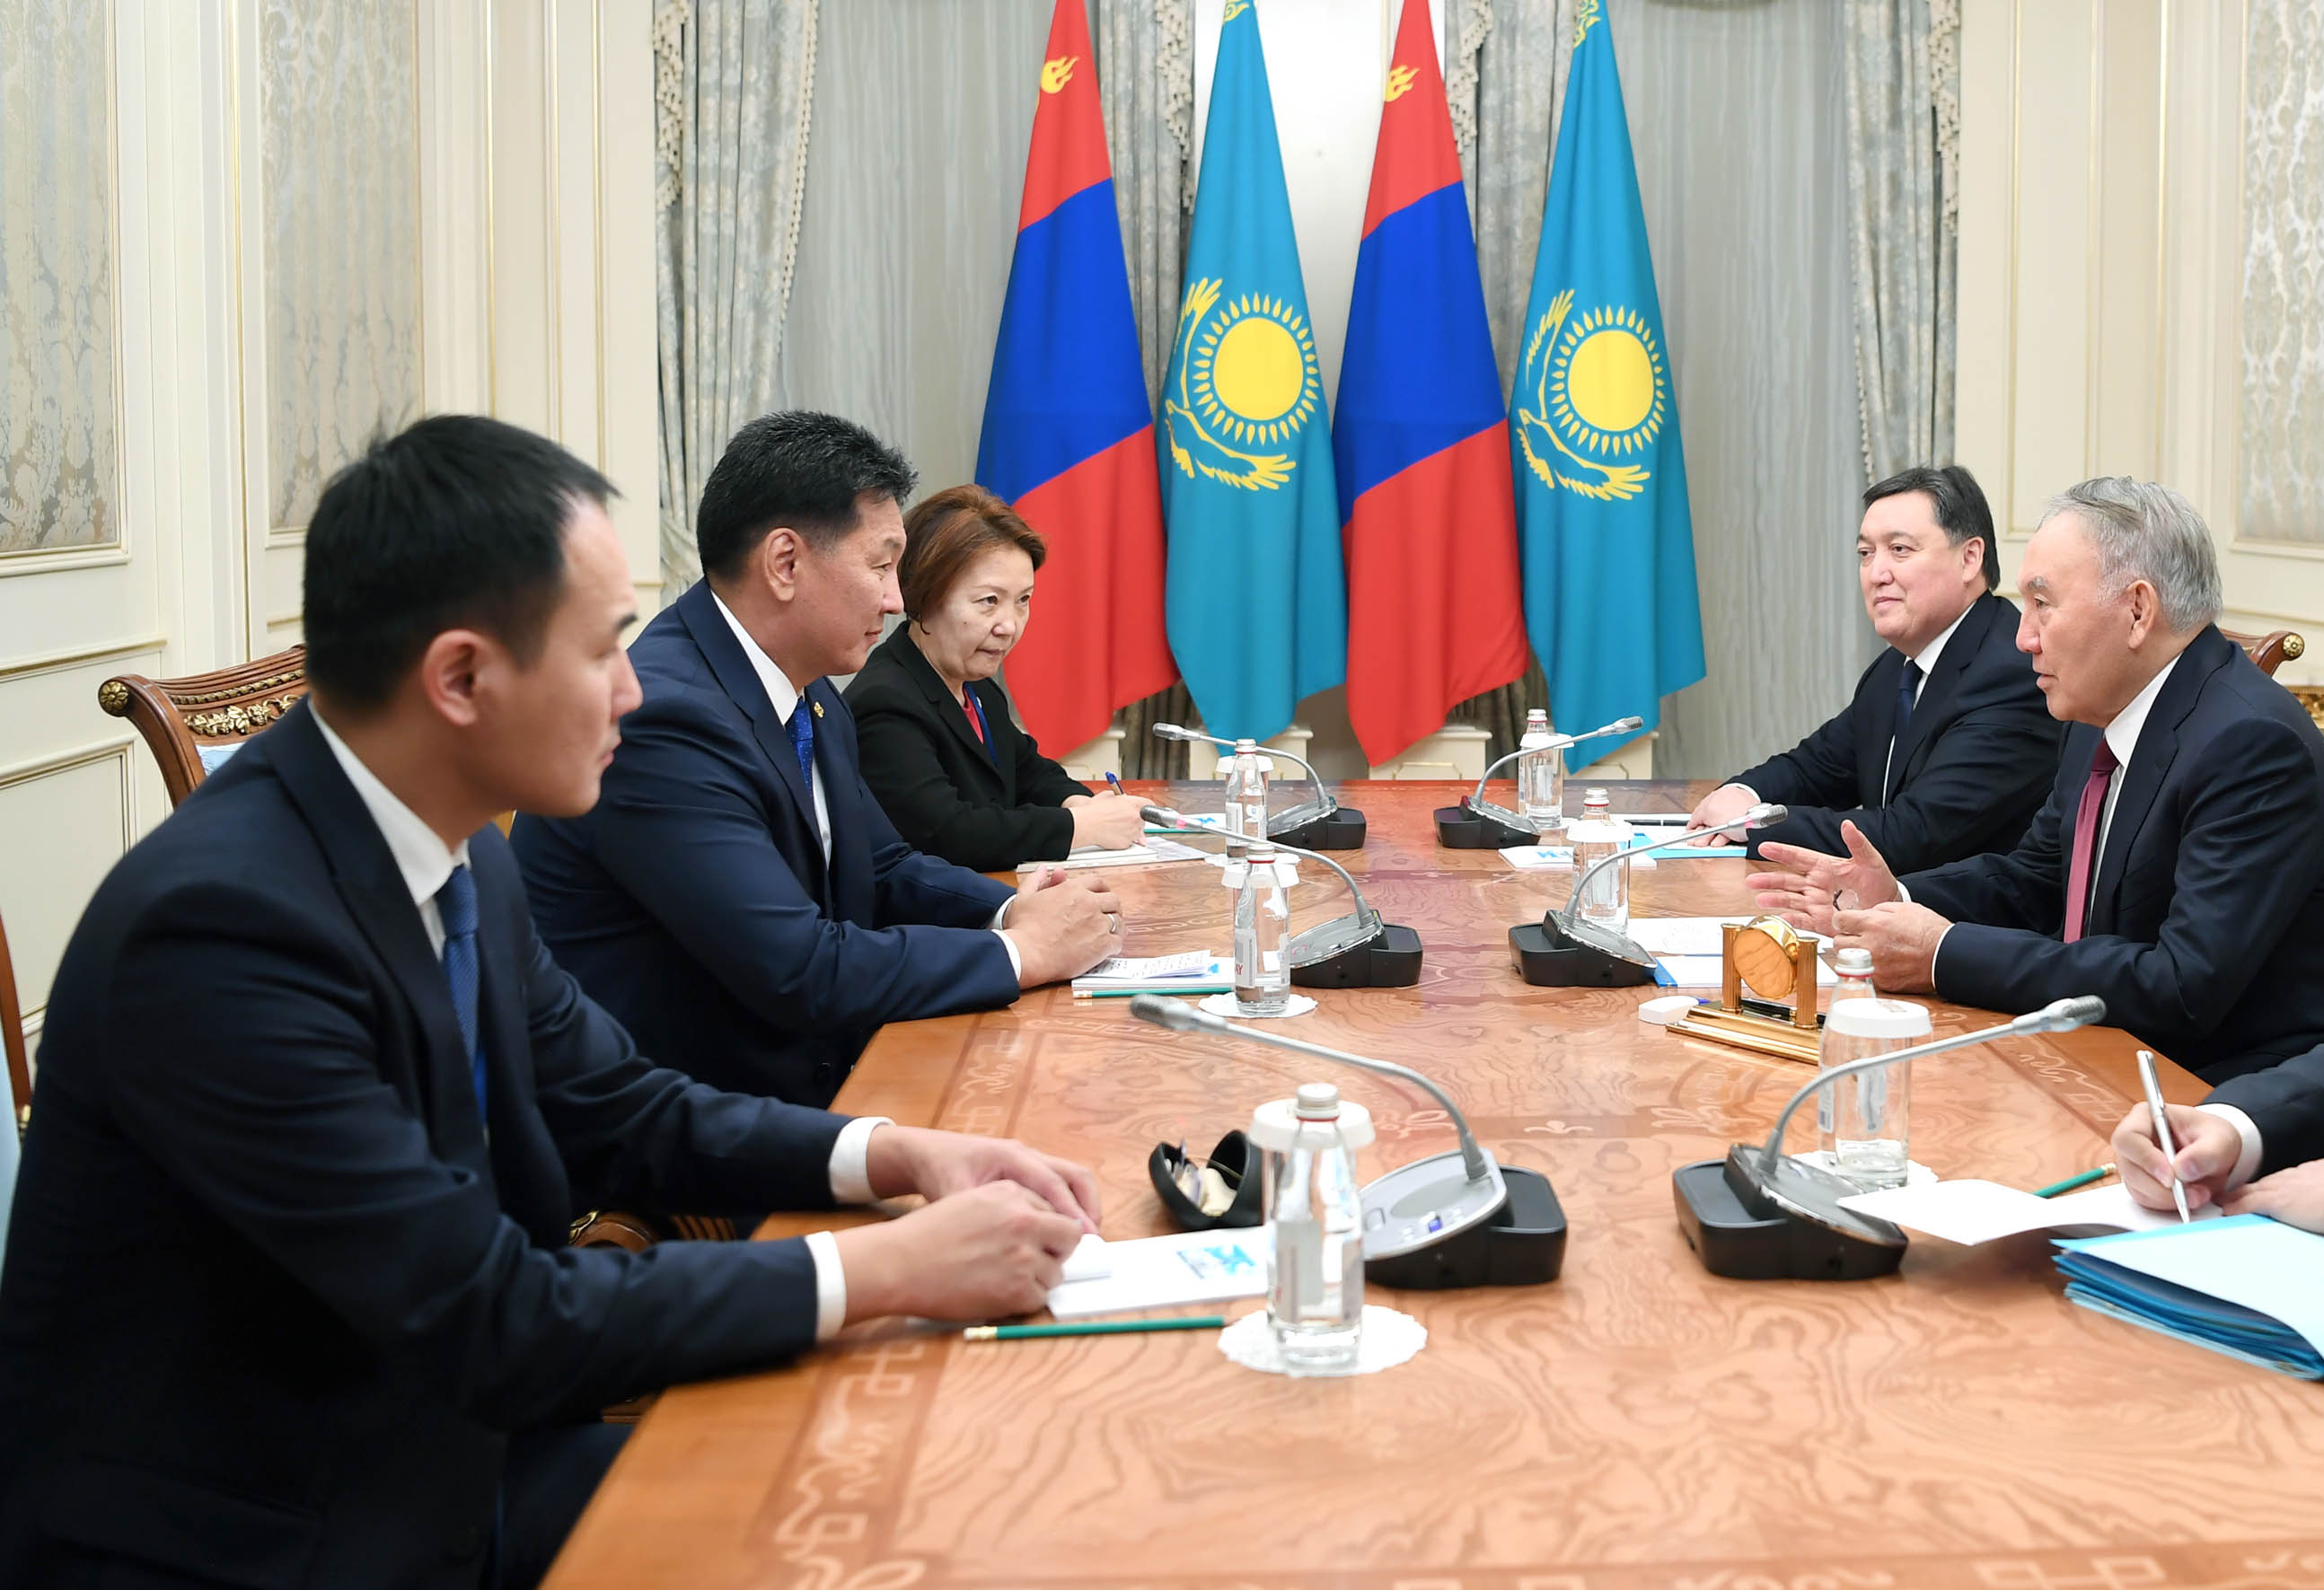 81a494cfa89fcdcbd9808345172d459f - Nursultan Nazarbayev pointed to the low level of trade in Mongolia